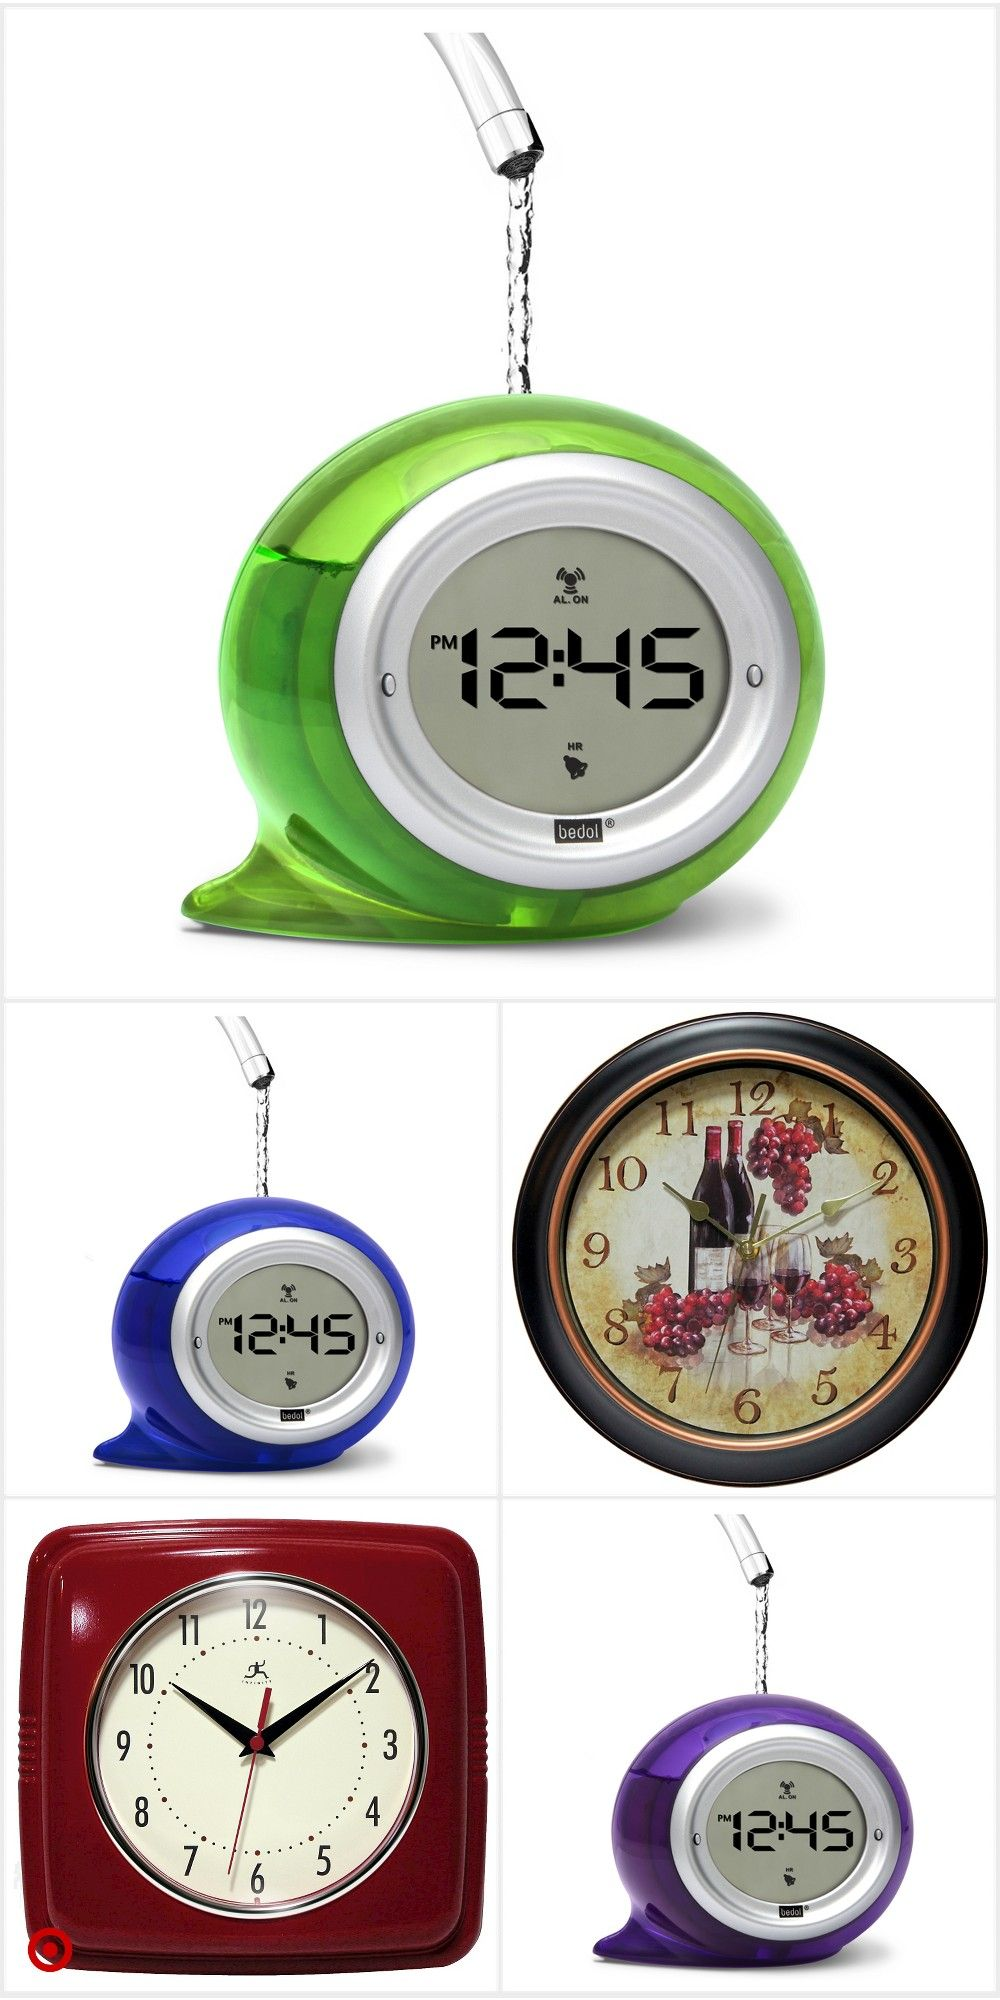 Shop Target For Decorative Clocks You Will Love At Great Low Prices Free Shipping On Orders Of 35 Or Free Same Clock Decor Wall Clock Light Clock Wall Decor